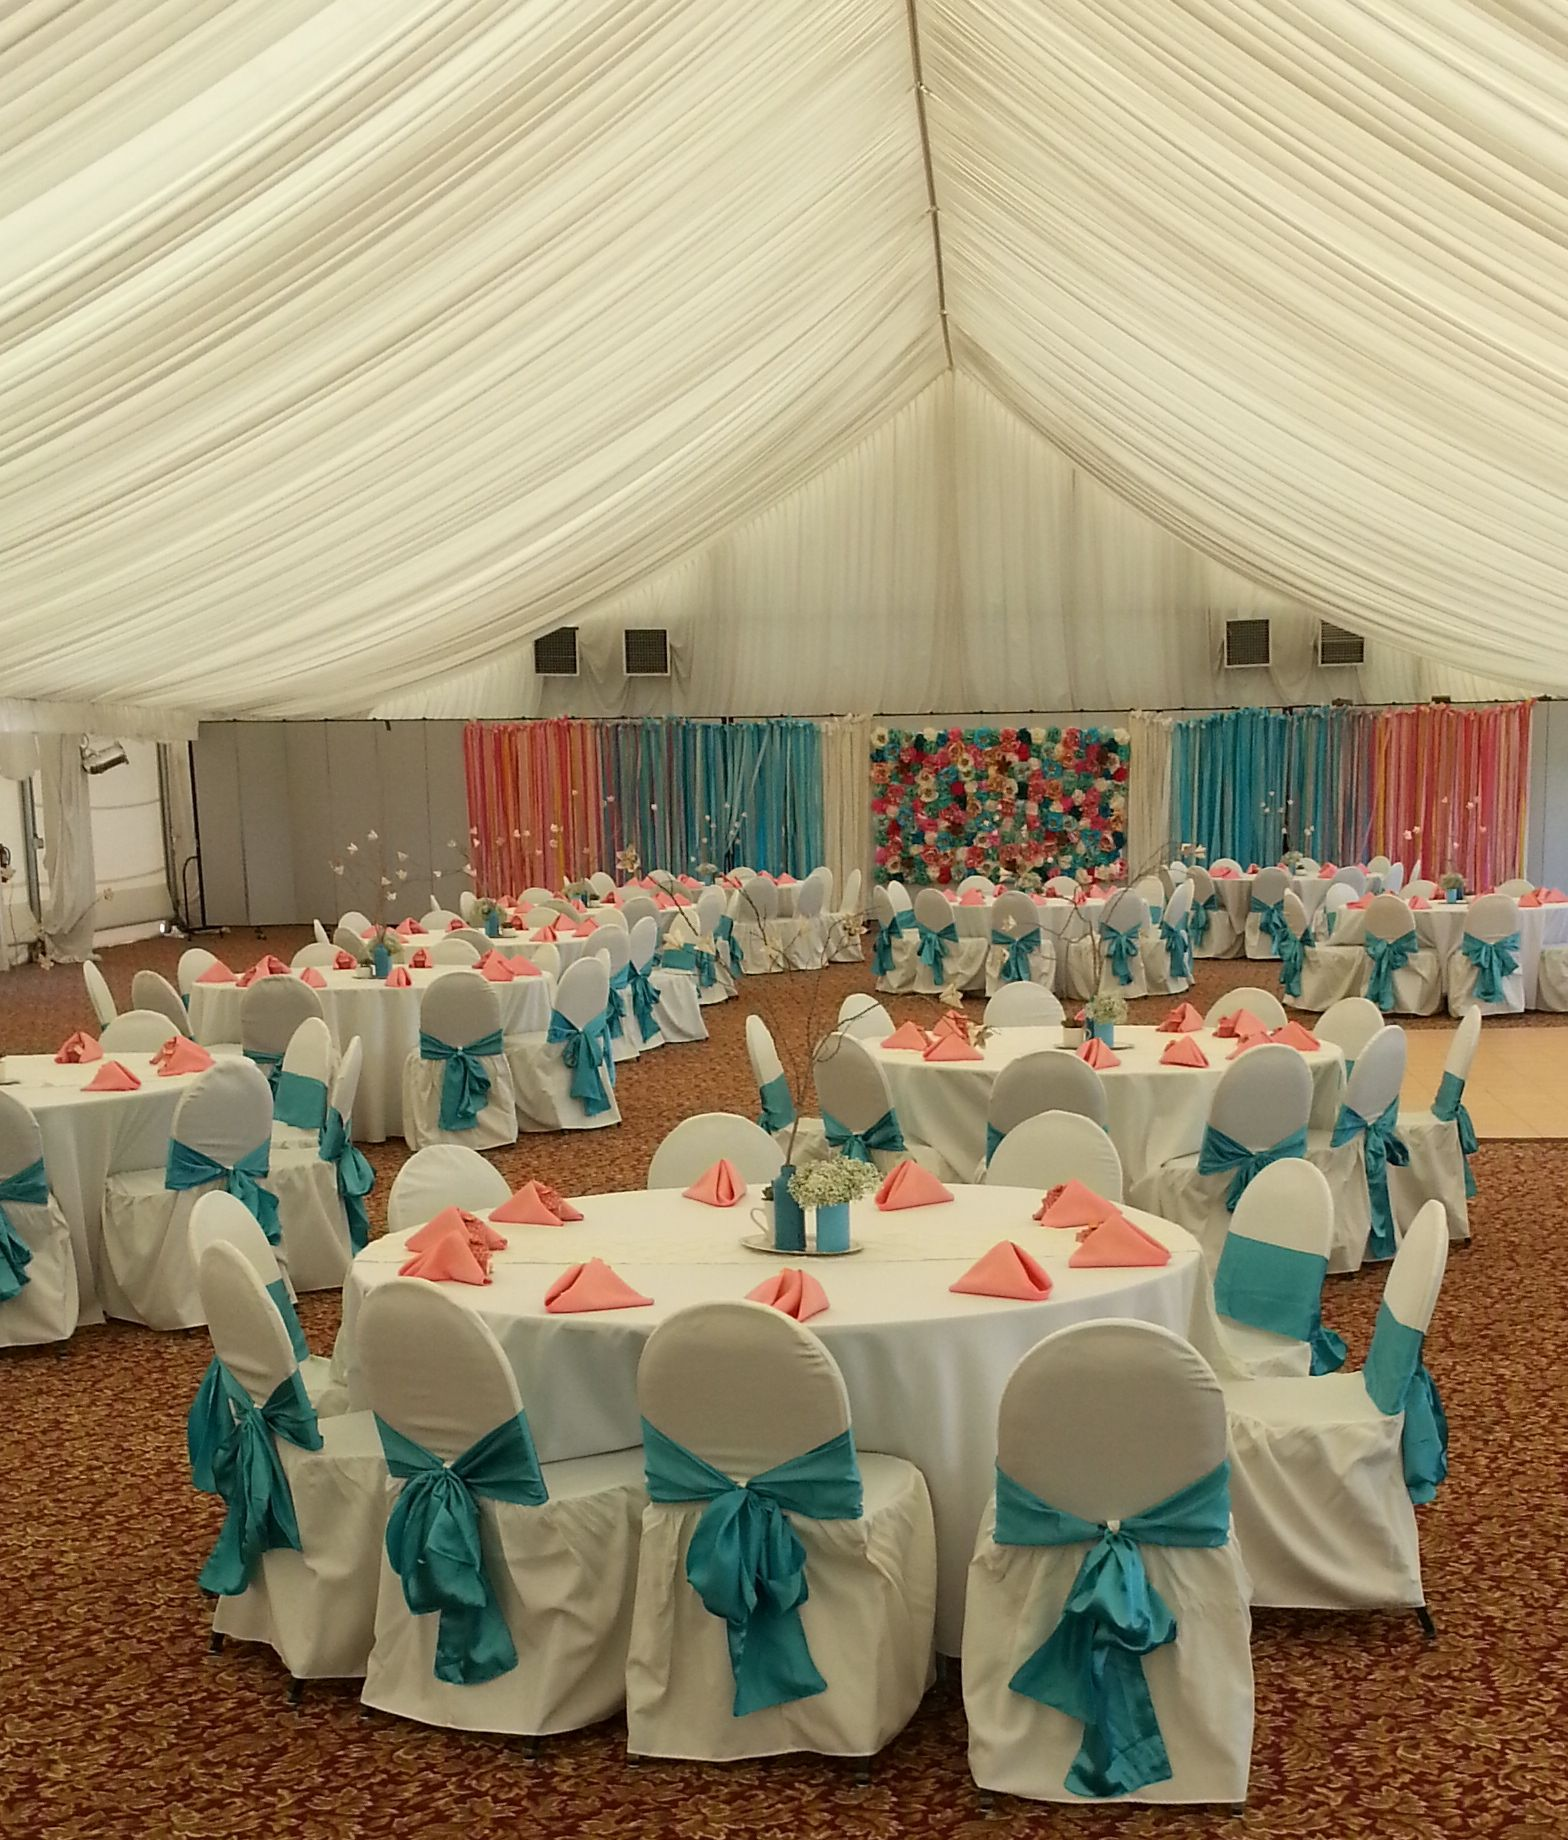 coral sashes for wedding chairs 6 person table and chair set linens fabric napkins napkin aqua pool